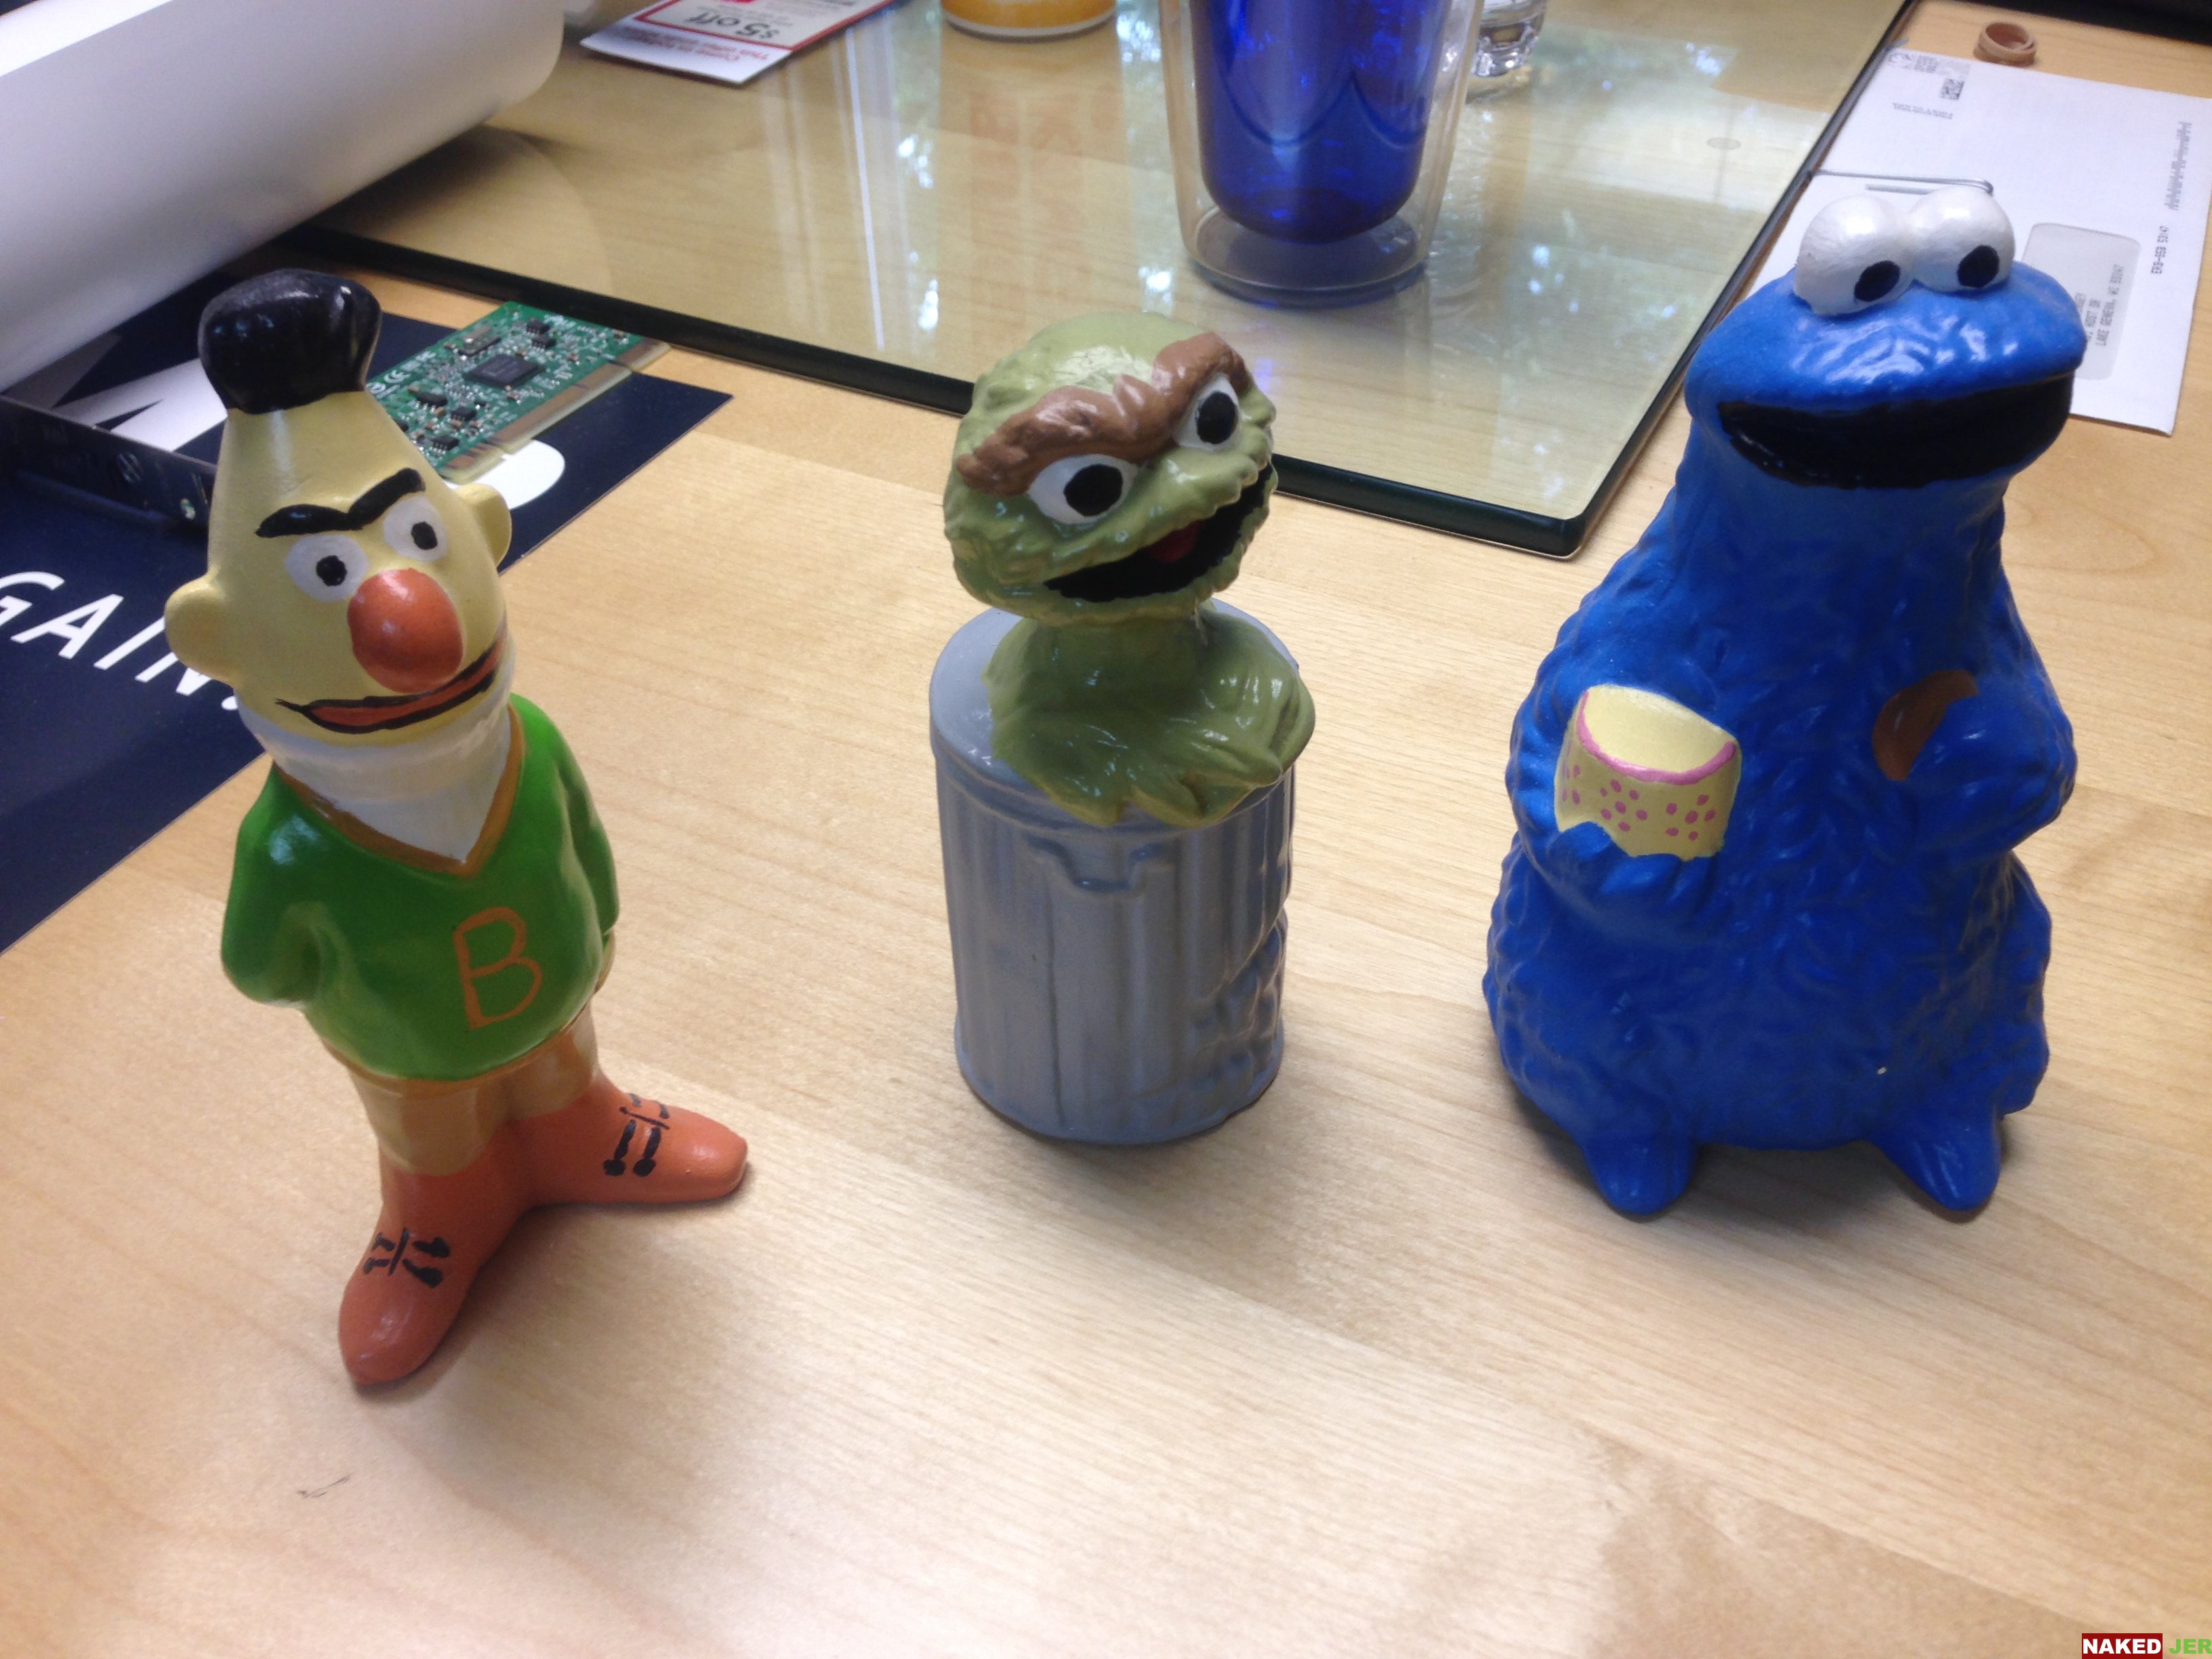 Burt Oscar the grouch and the cookie monster. $10 for all